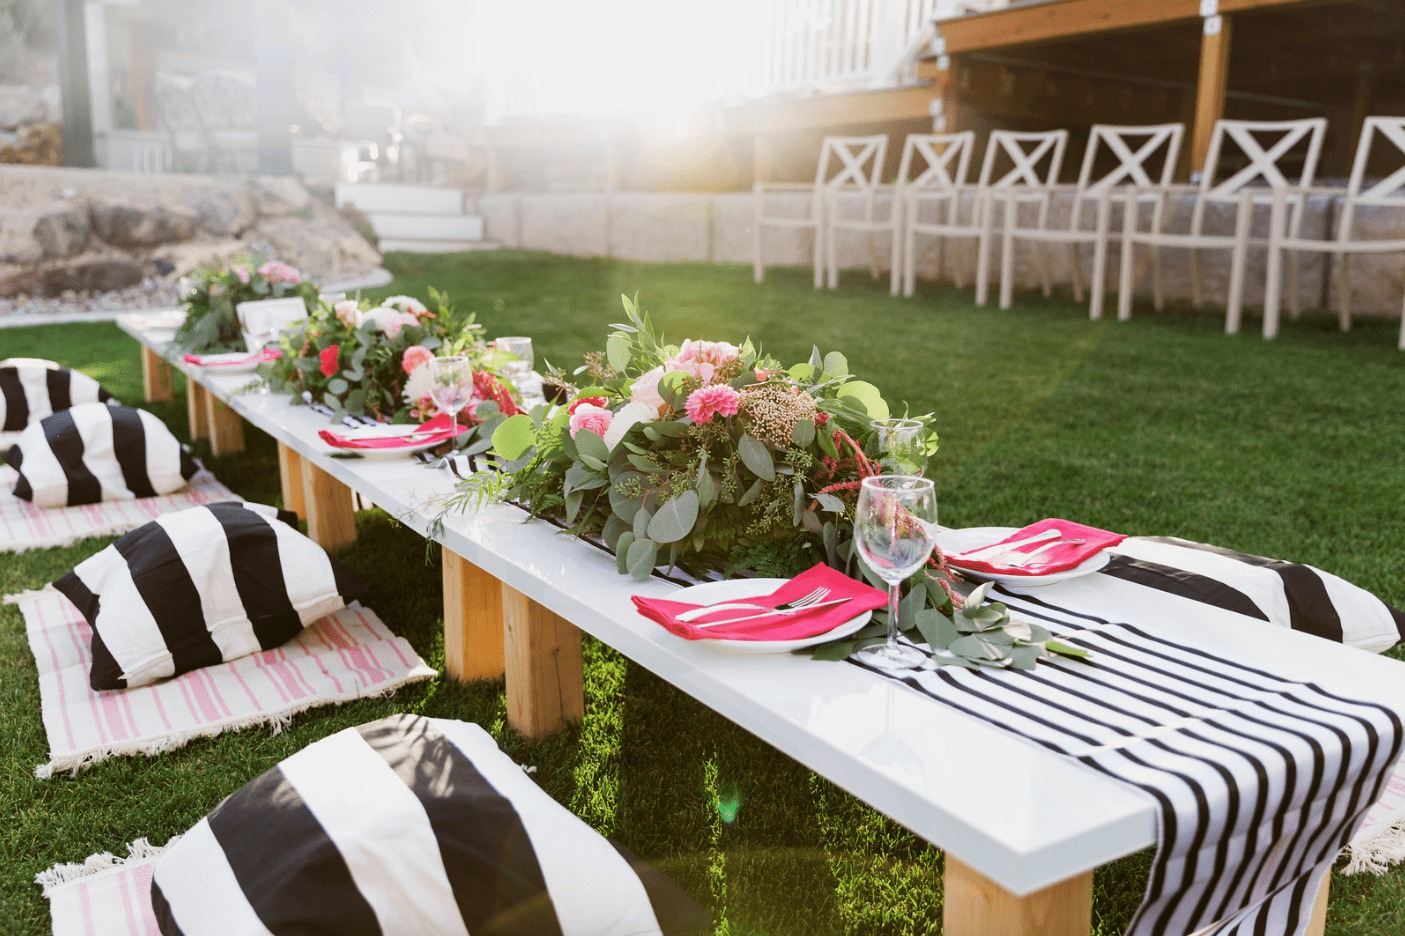 8 Steps to become a professional party planner